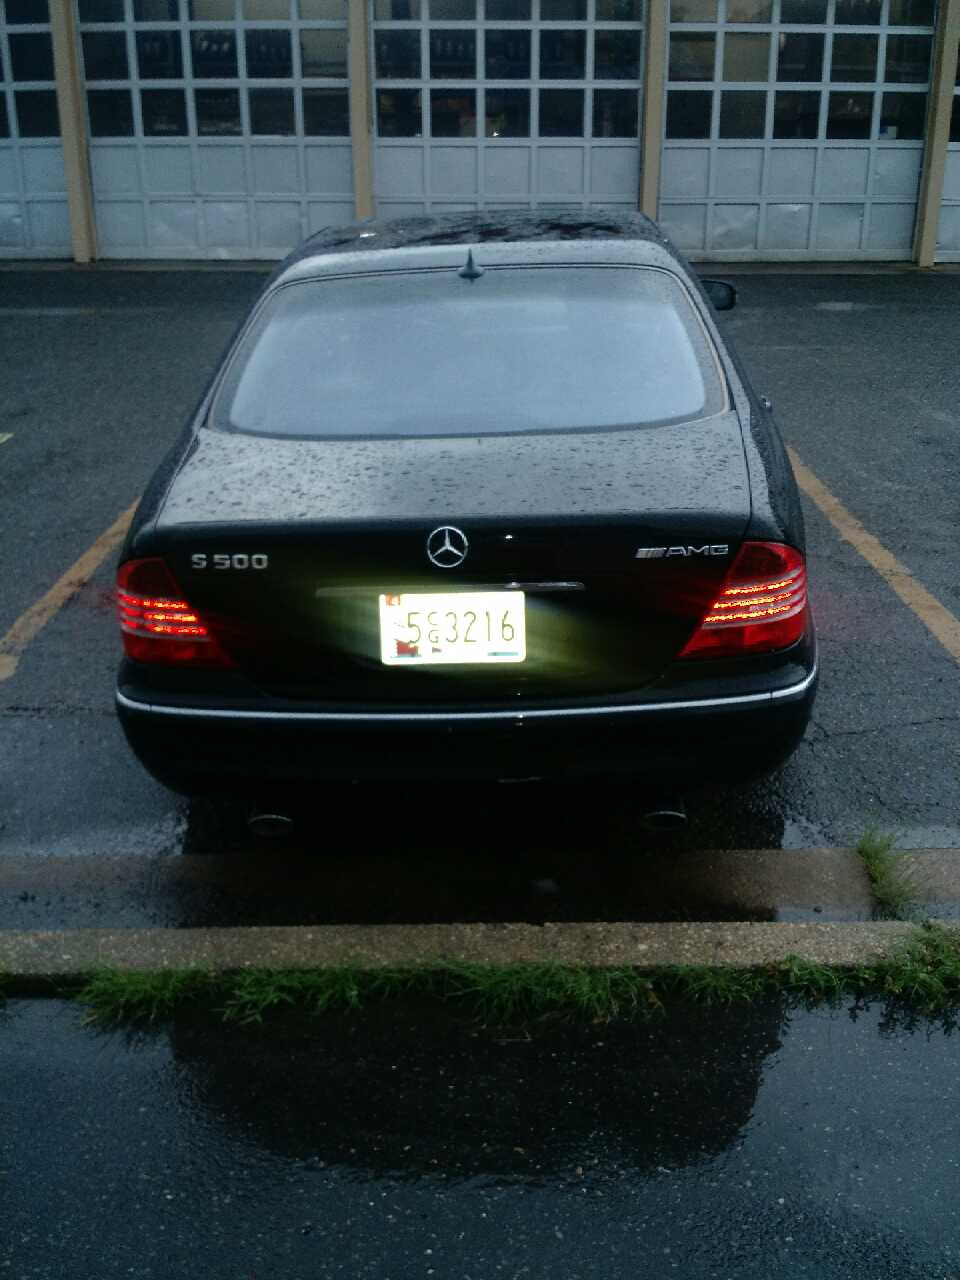 Letgo mercedes s500 amg package in germantown md for Mercedes benz germantown md